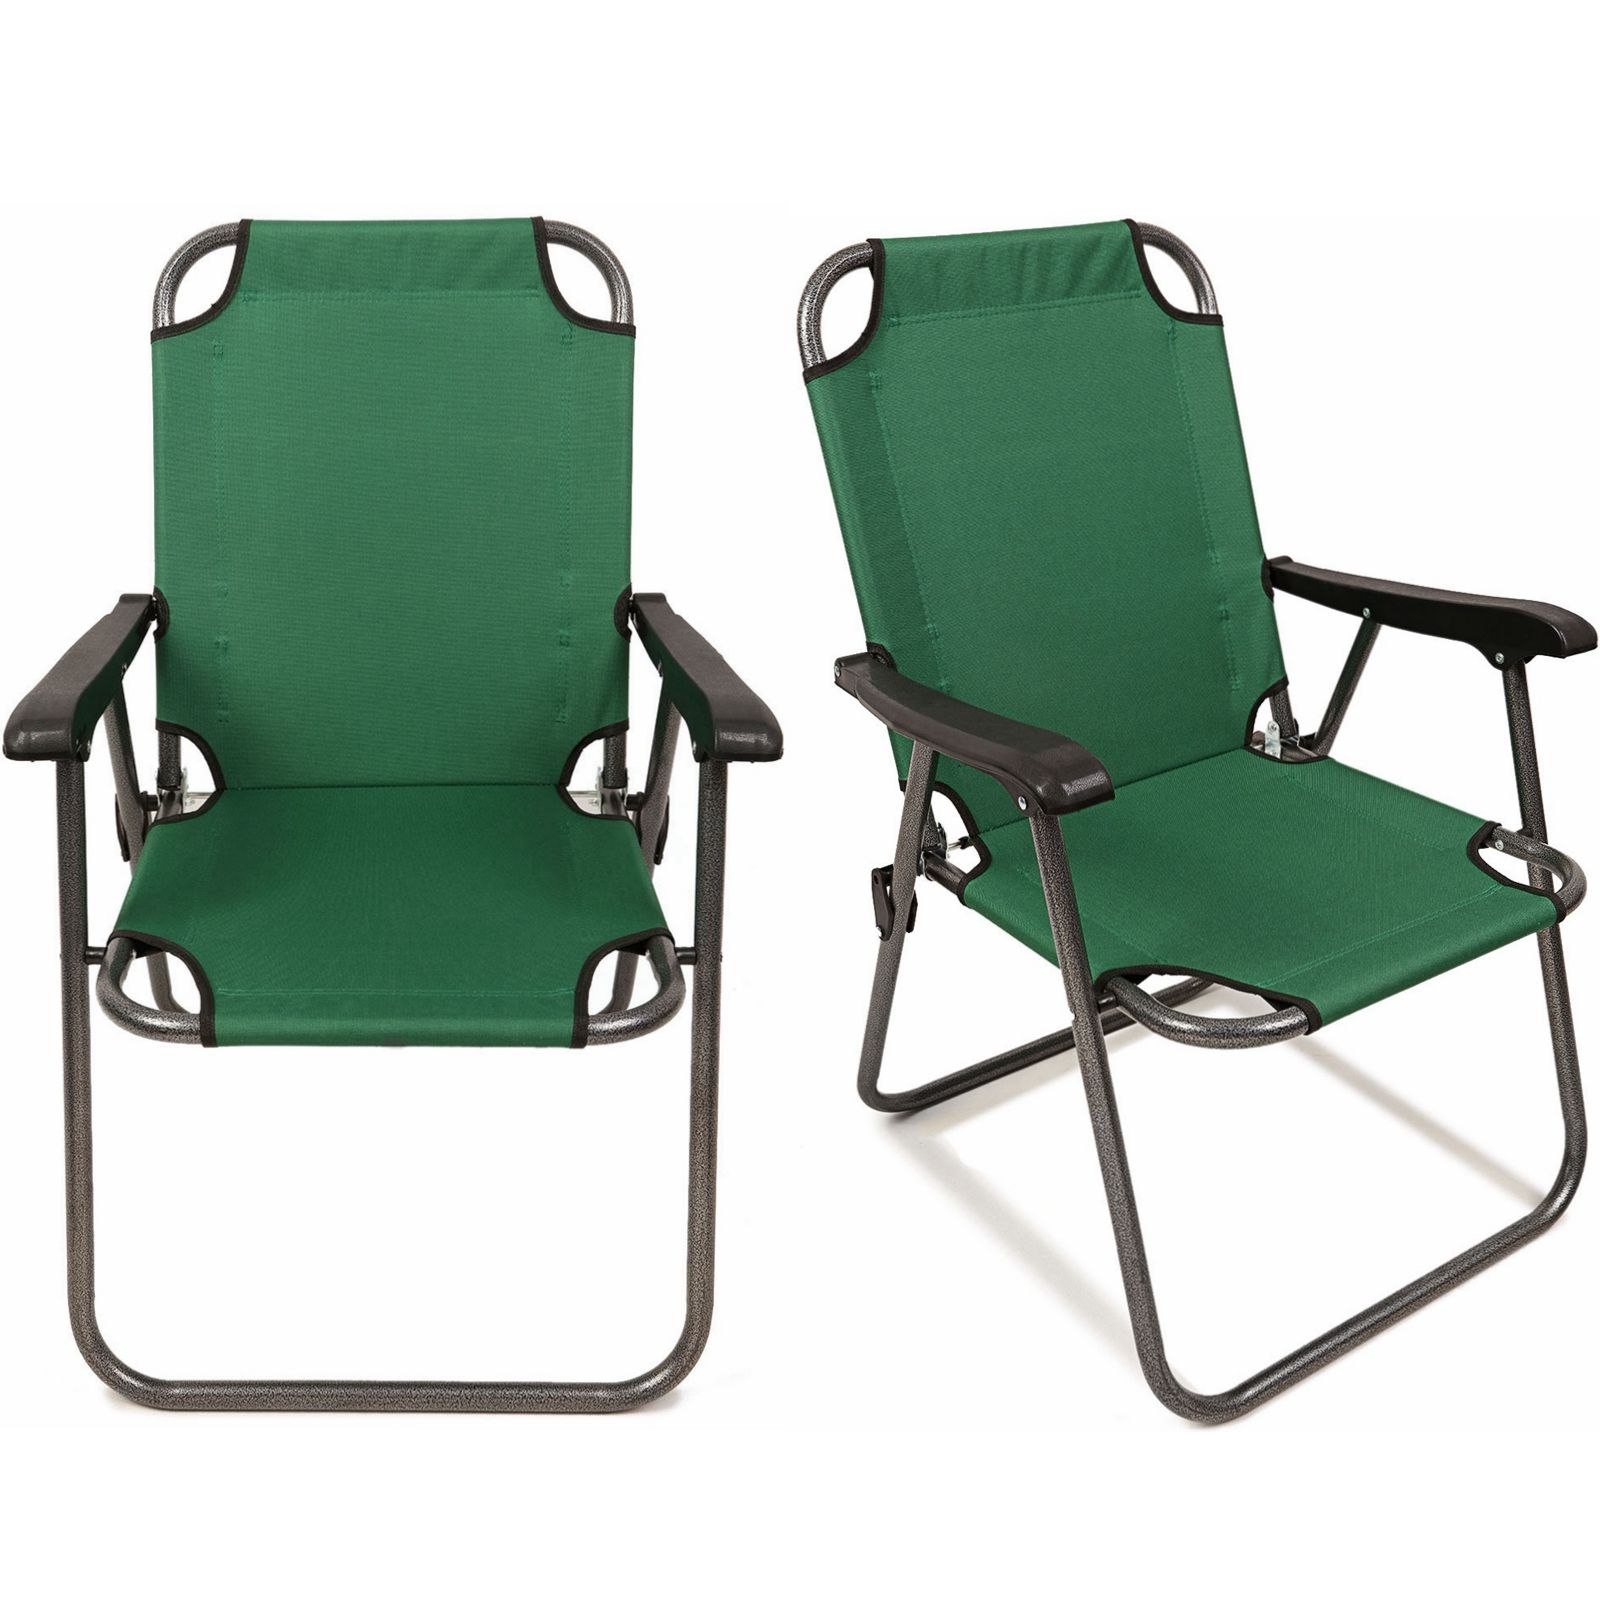 Magshion Deluxe Lightweight Beach Chair Outdoor Camping Hiking With Armrest Chair Set of 2 Blue